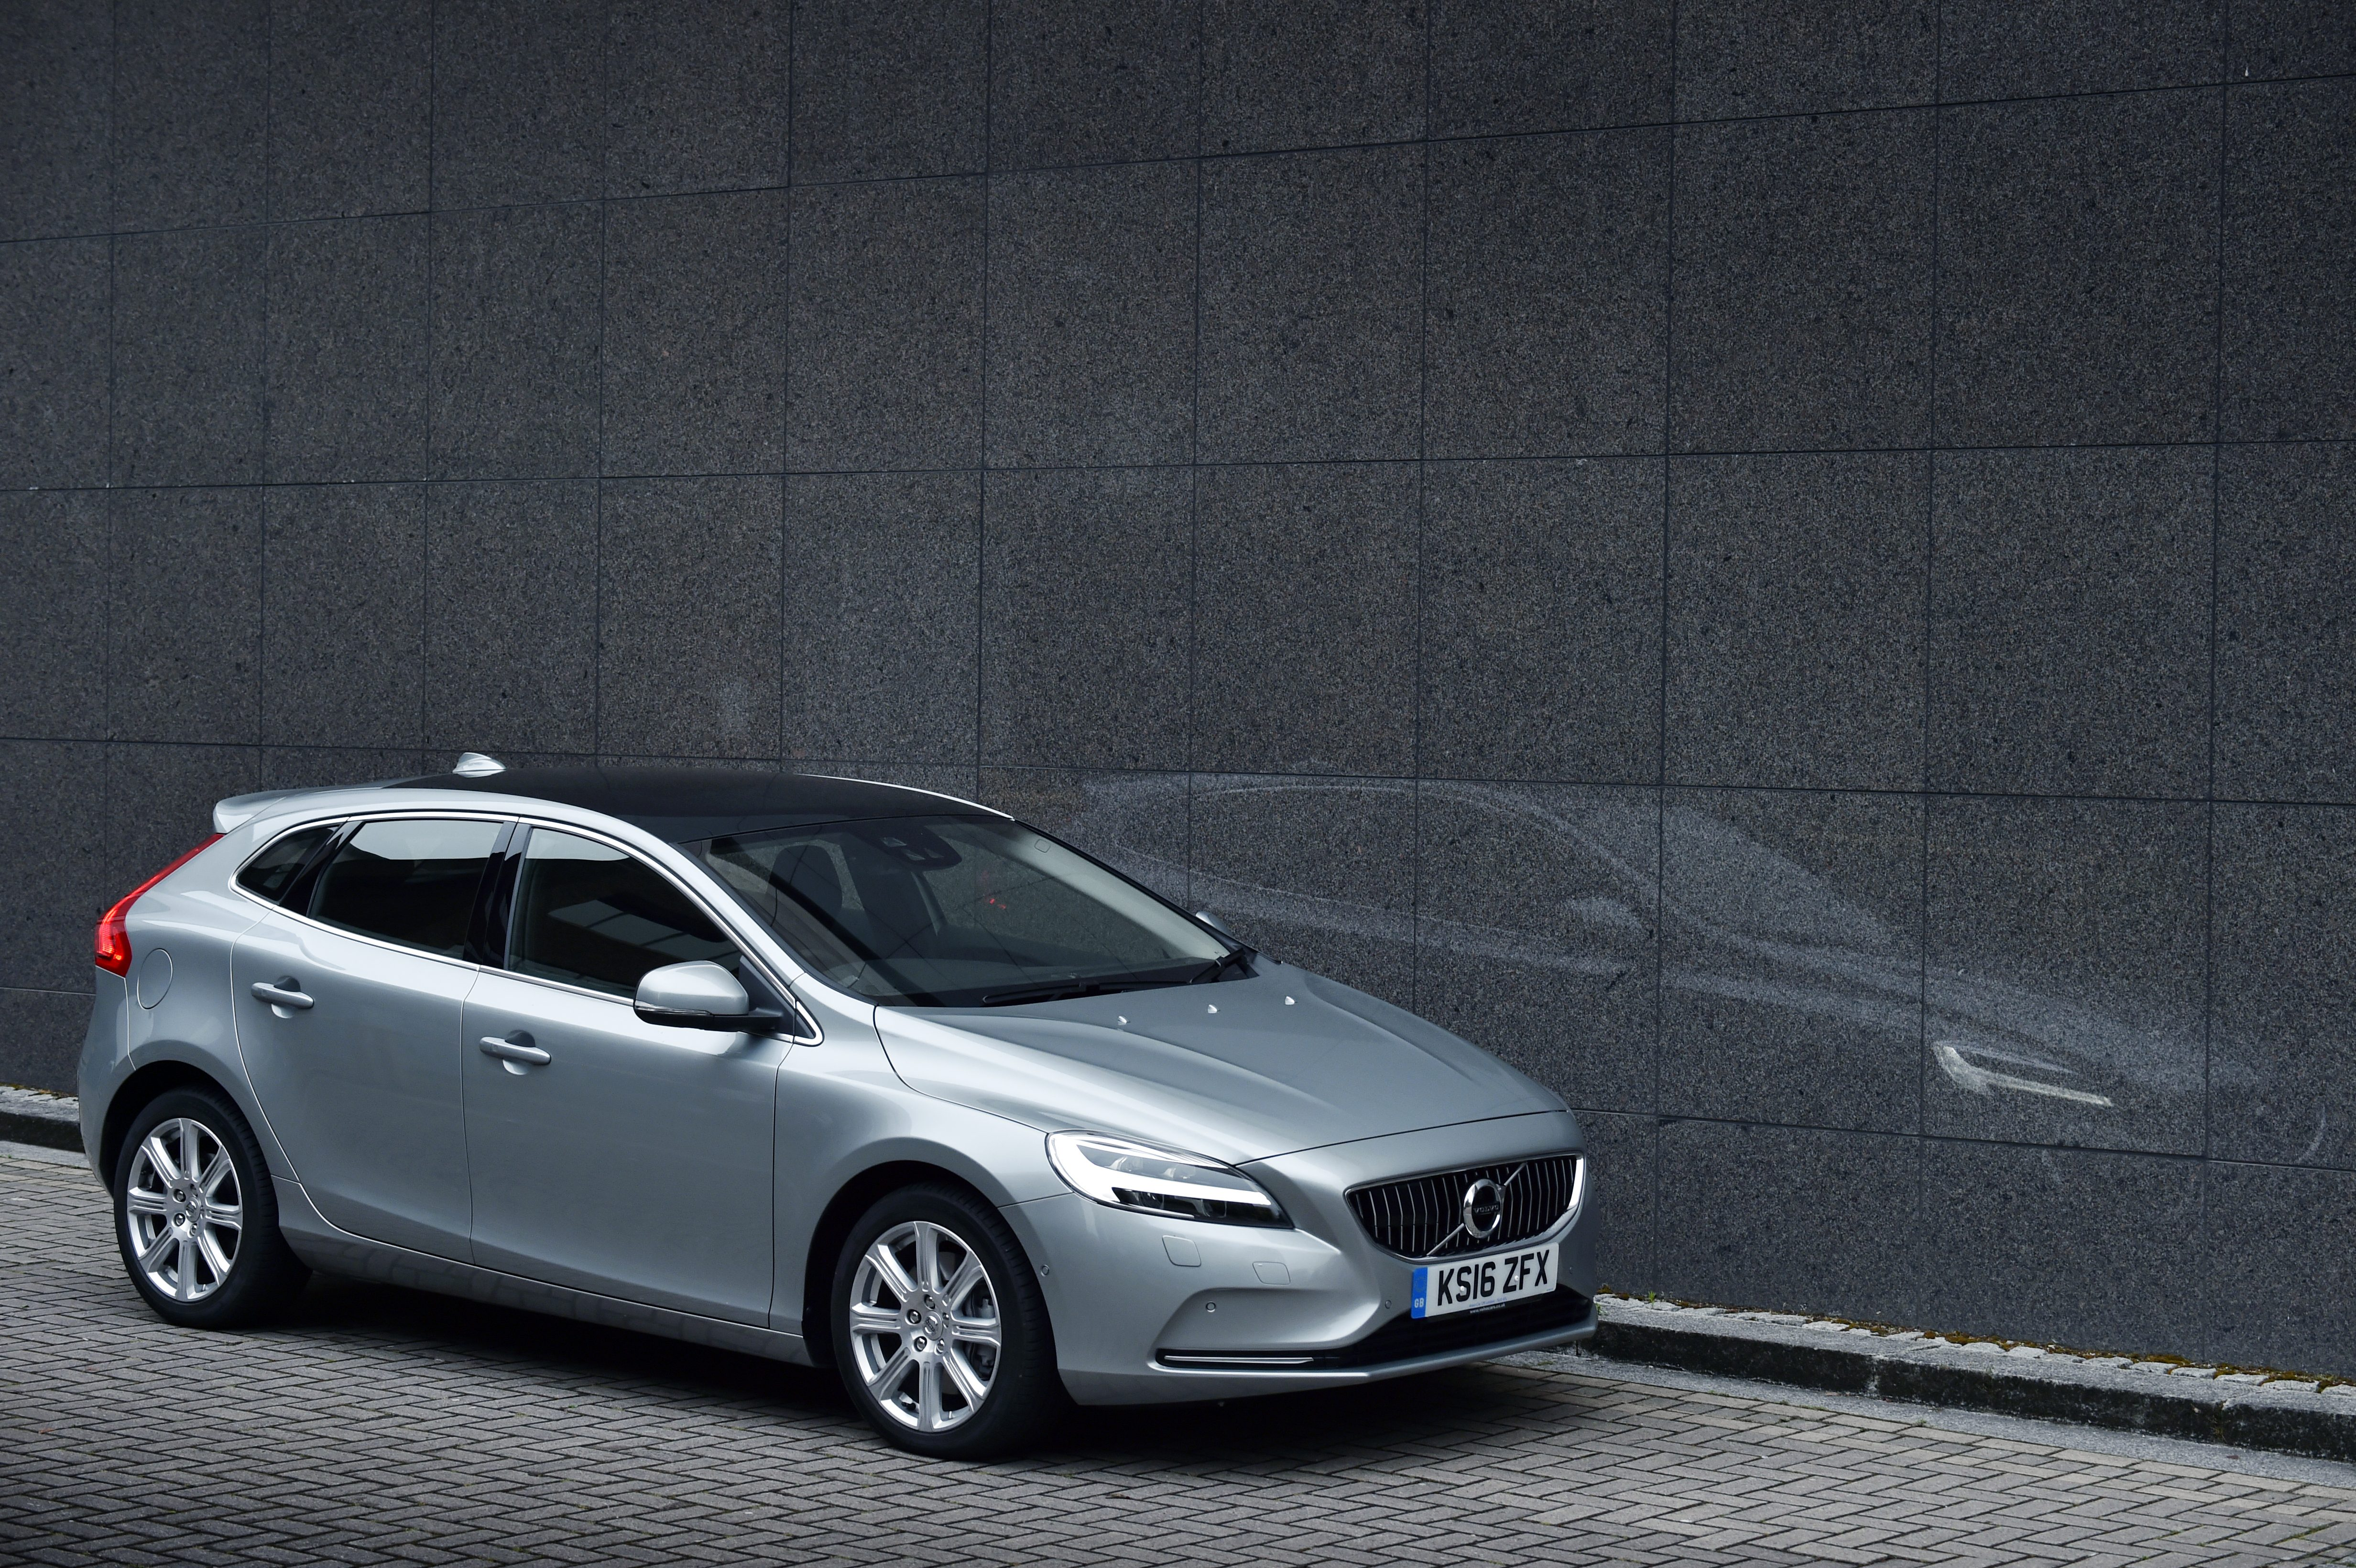 volvo v40 d2 r design nav plus hatchback review car keys. Black Bedroom Furniture Sets. Home Design Ideas